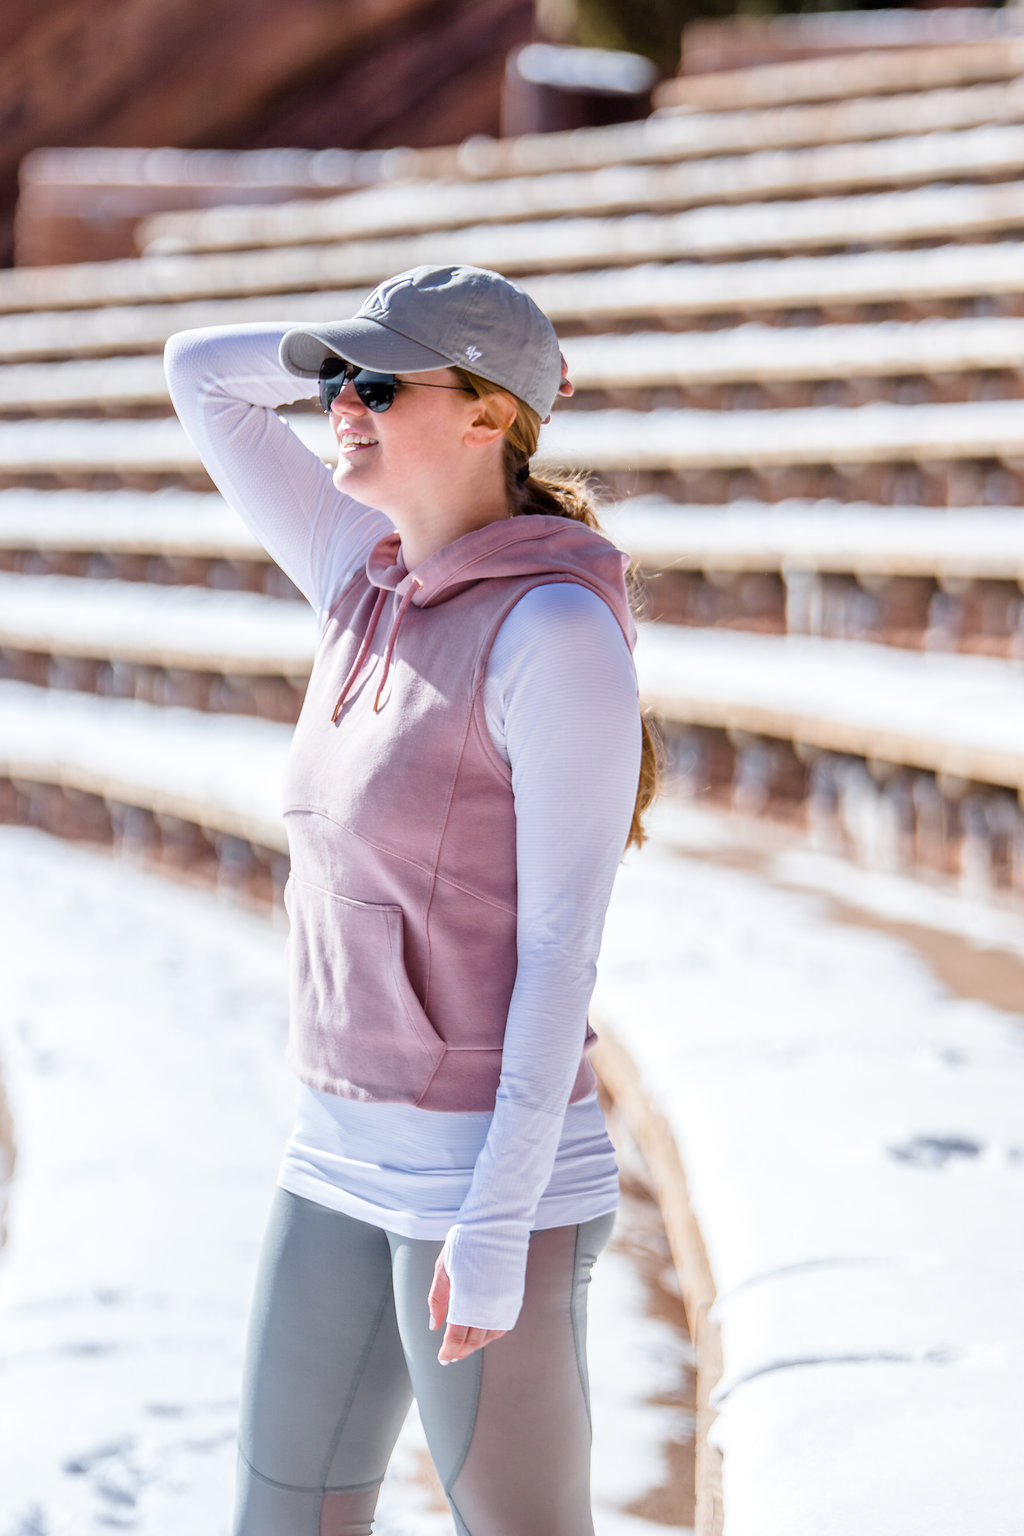 Lifestyle blogger Mollie Sheperdson shares an athleisure look in Red Rocks, CO